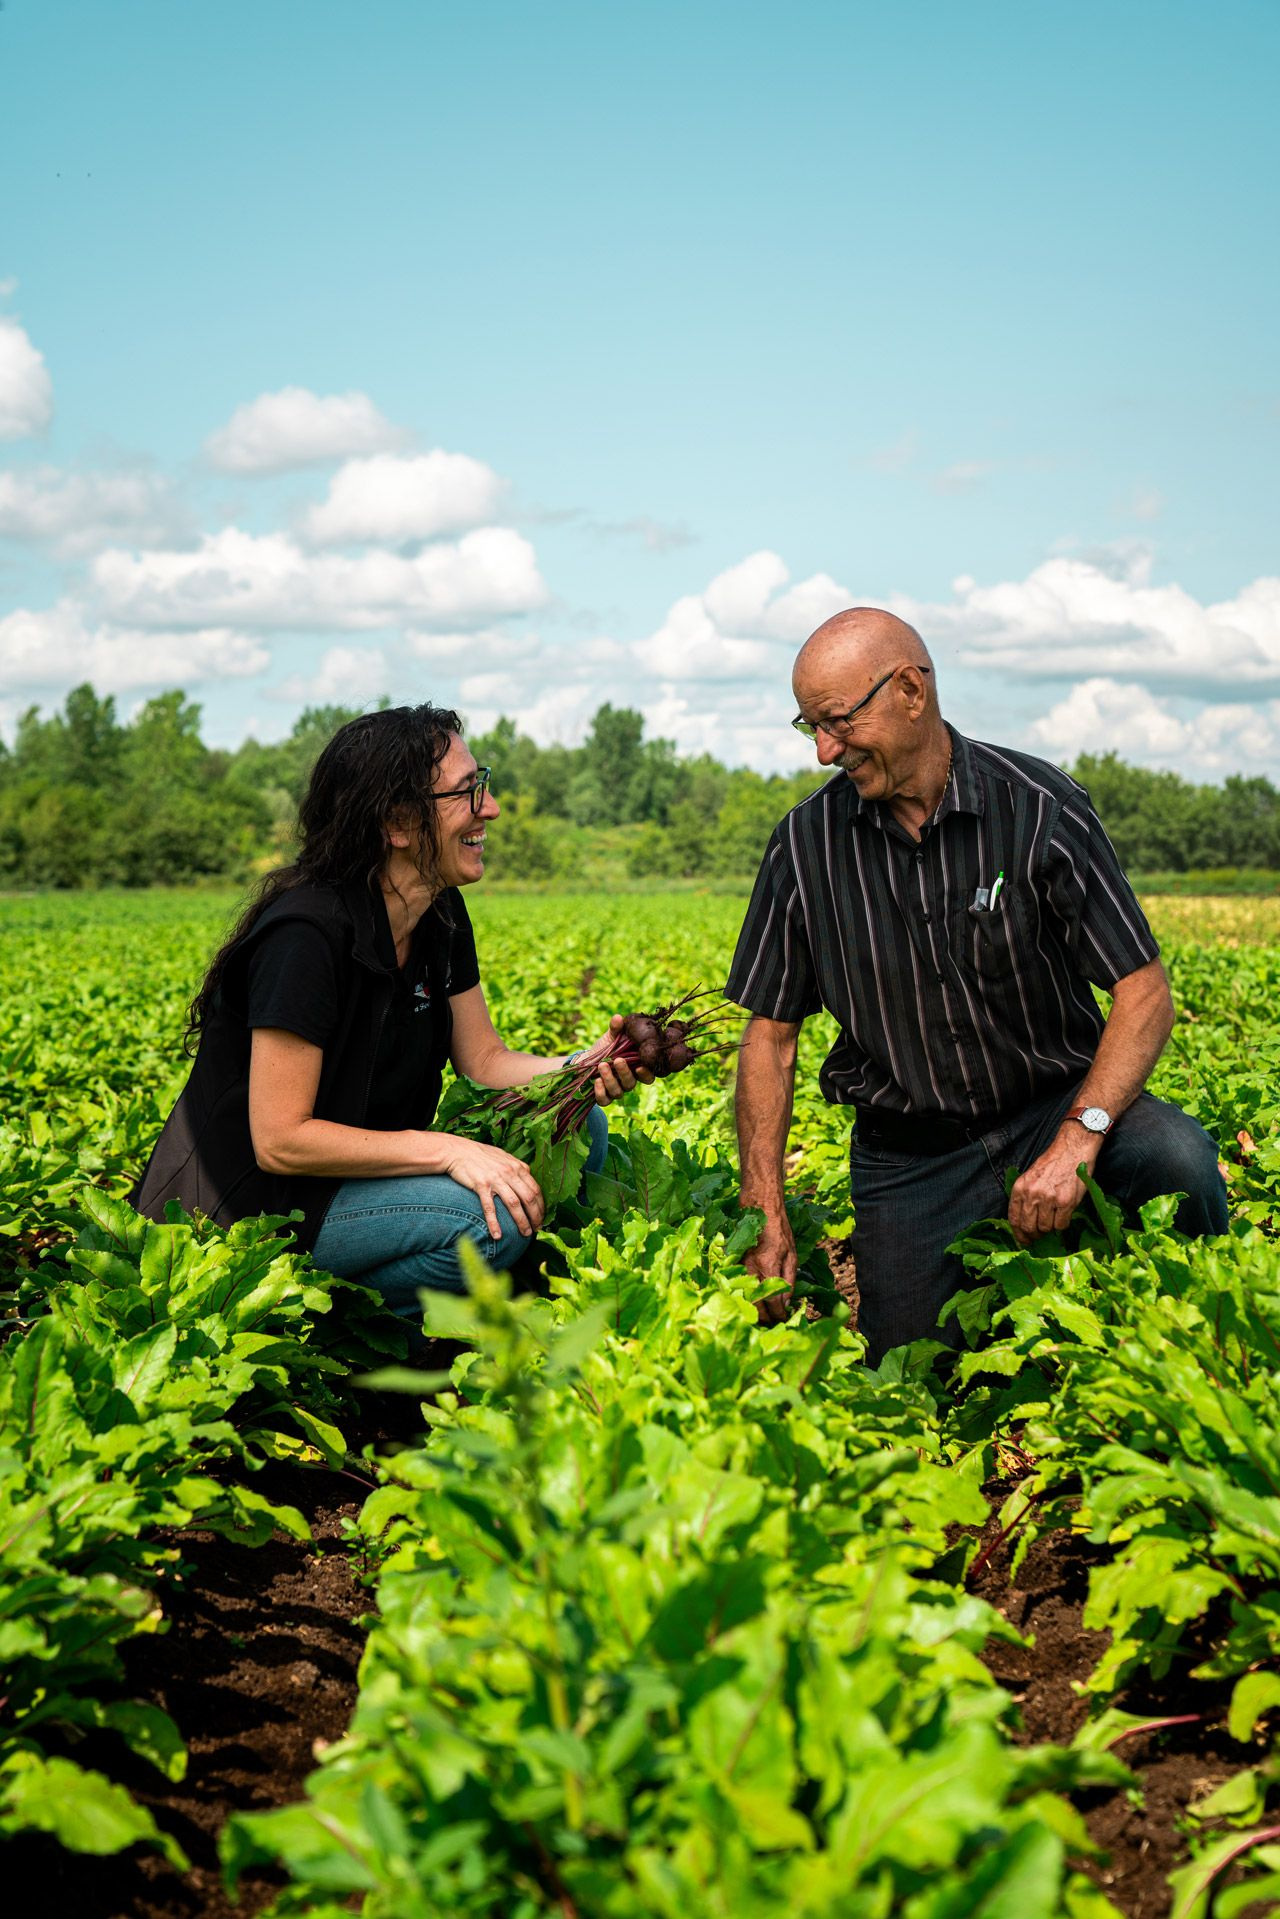 a woman and a man in a field of beets crouching on the ground laughing together by Bruno Florin for Sollio Agriculture